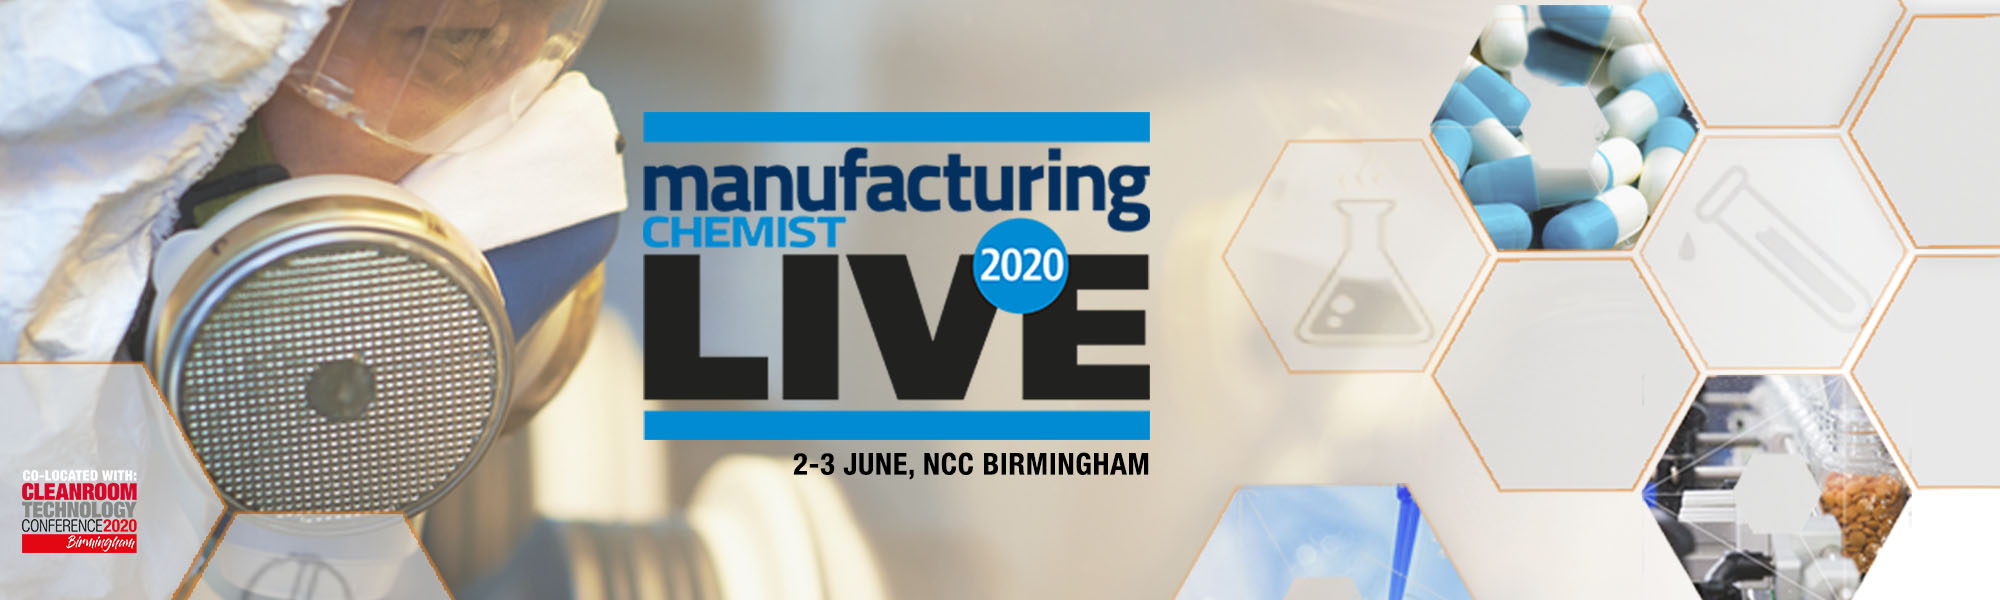 Manufacturing Chemist Live